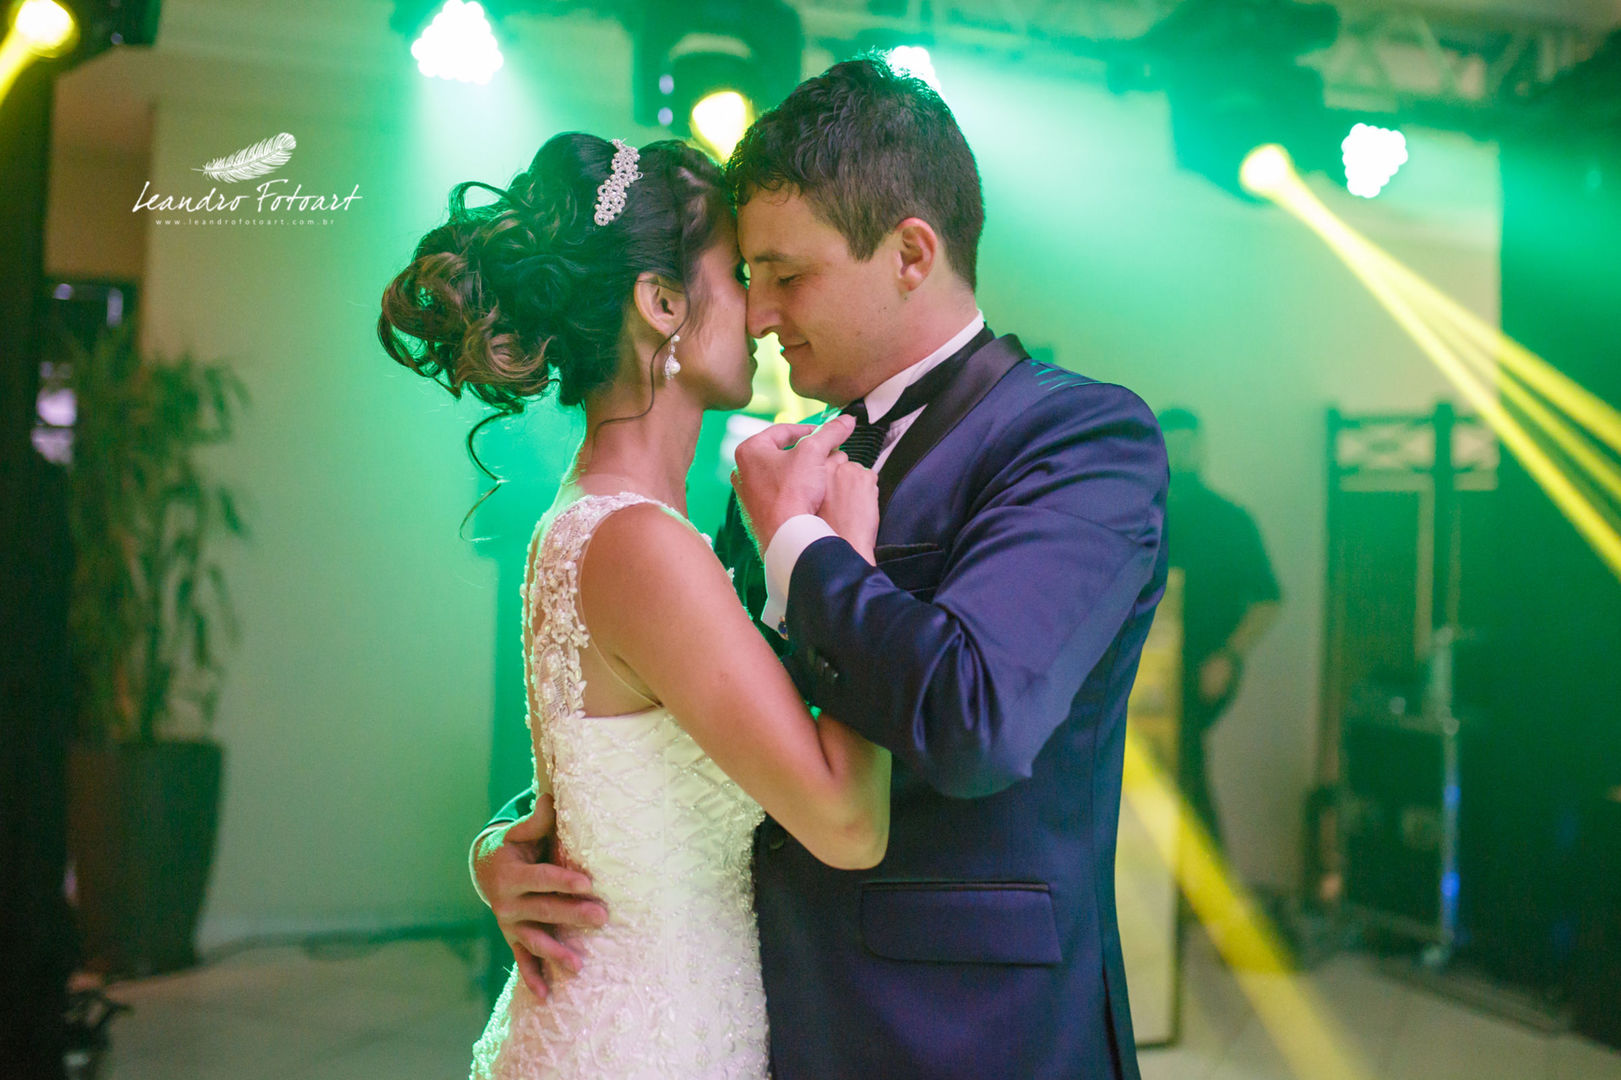 MARIA FERNANDA + ISRAEL WEDDINGDAY